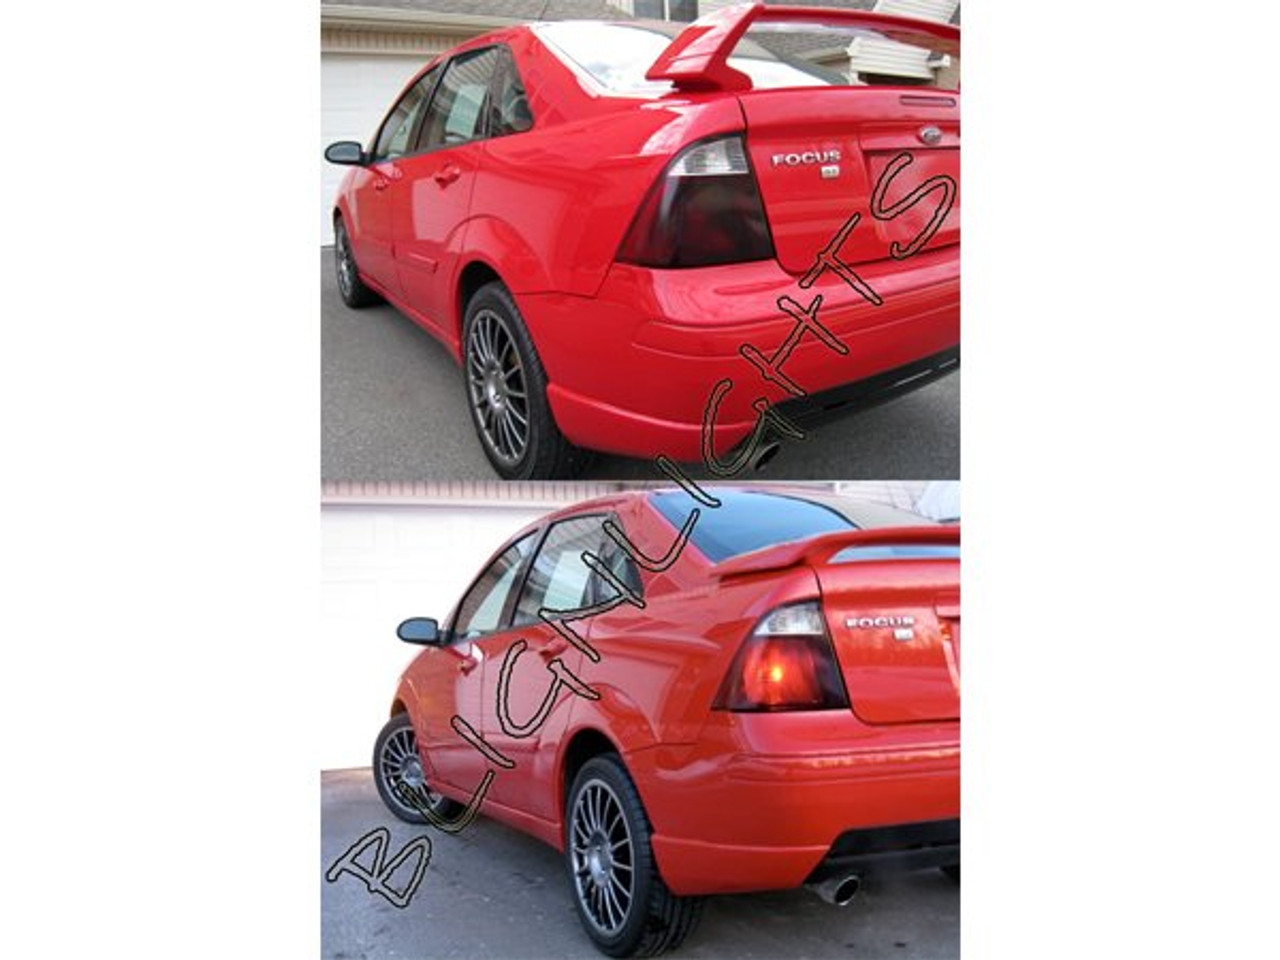 Toyota Celica Tinted Smoked Taillamp Taillight Overlays Film Protection